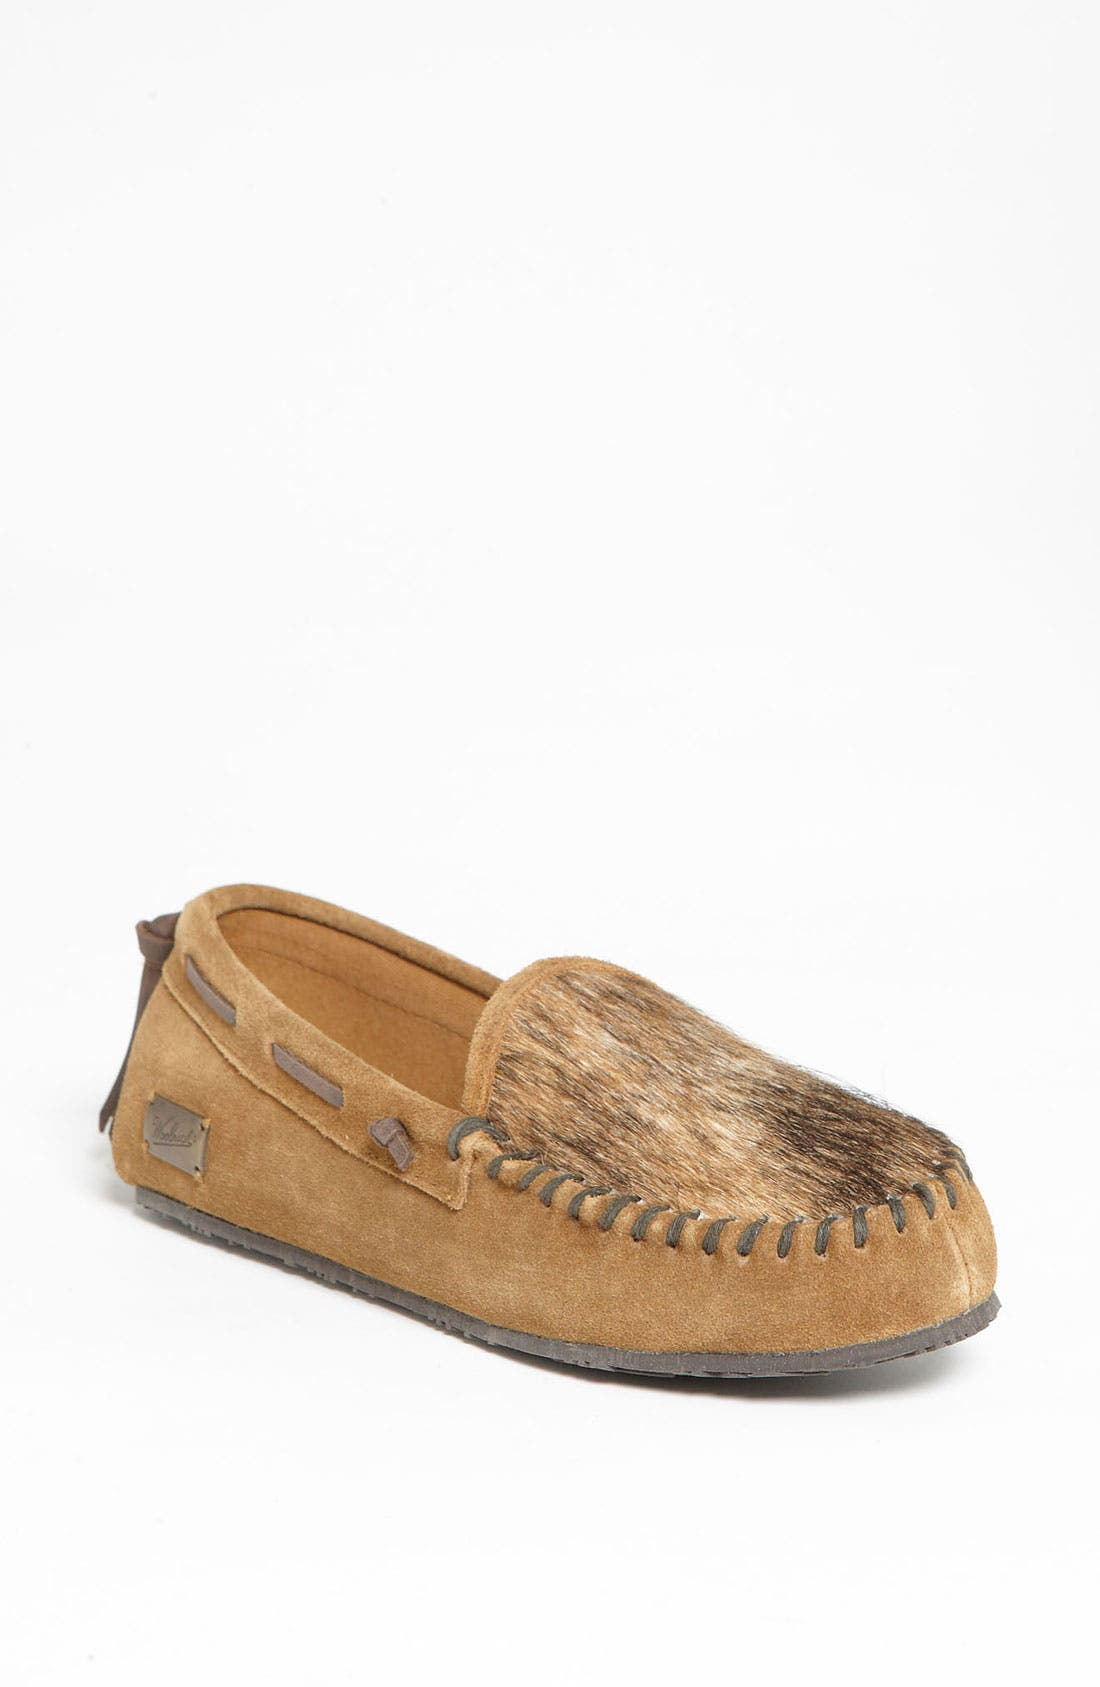 Alternate Image 1 Selected - Woolrich 'Tillamook' Moccasin Slipper